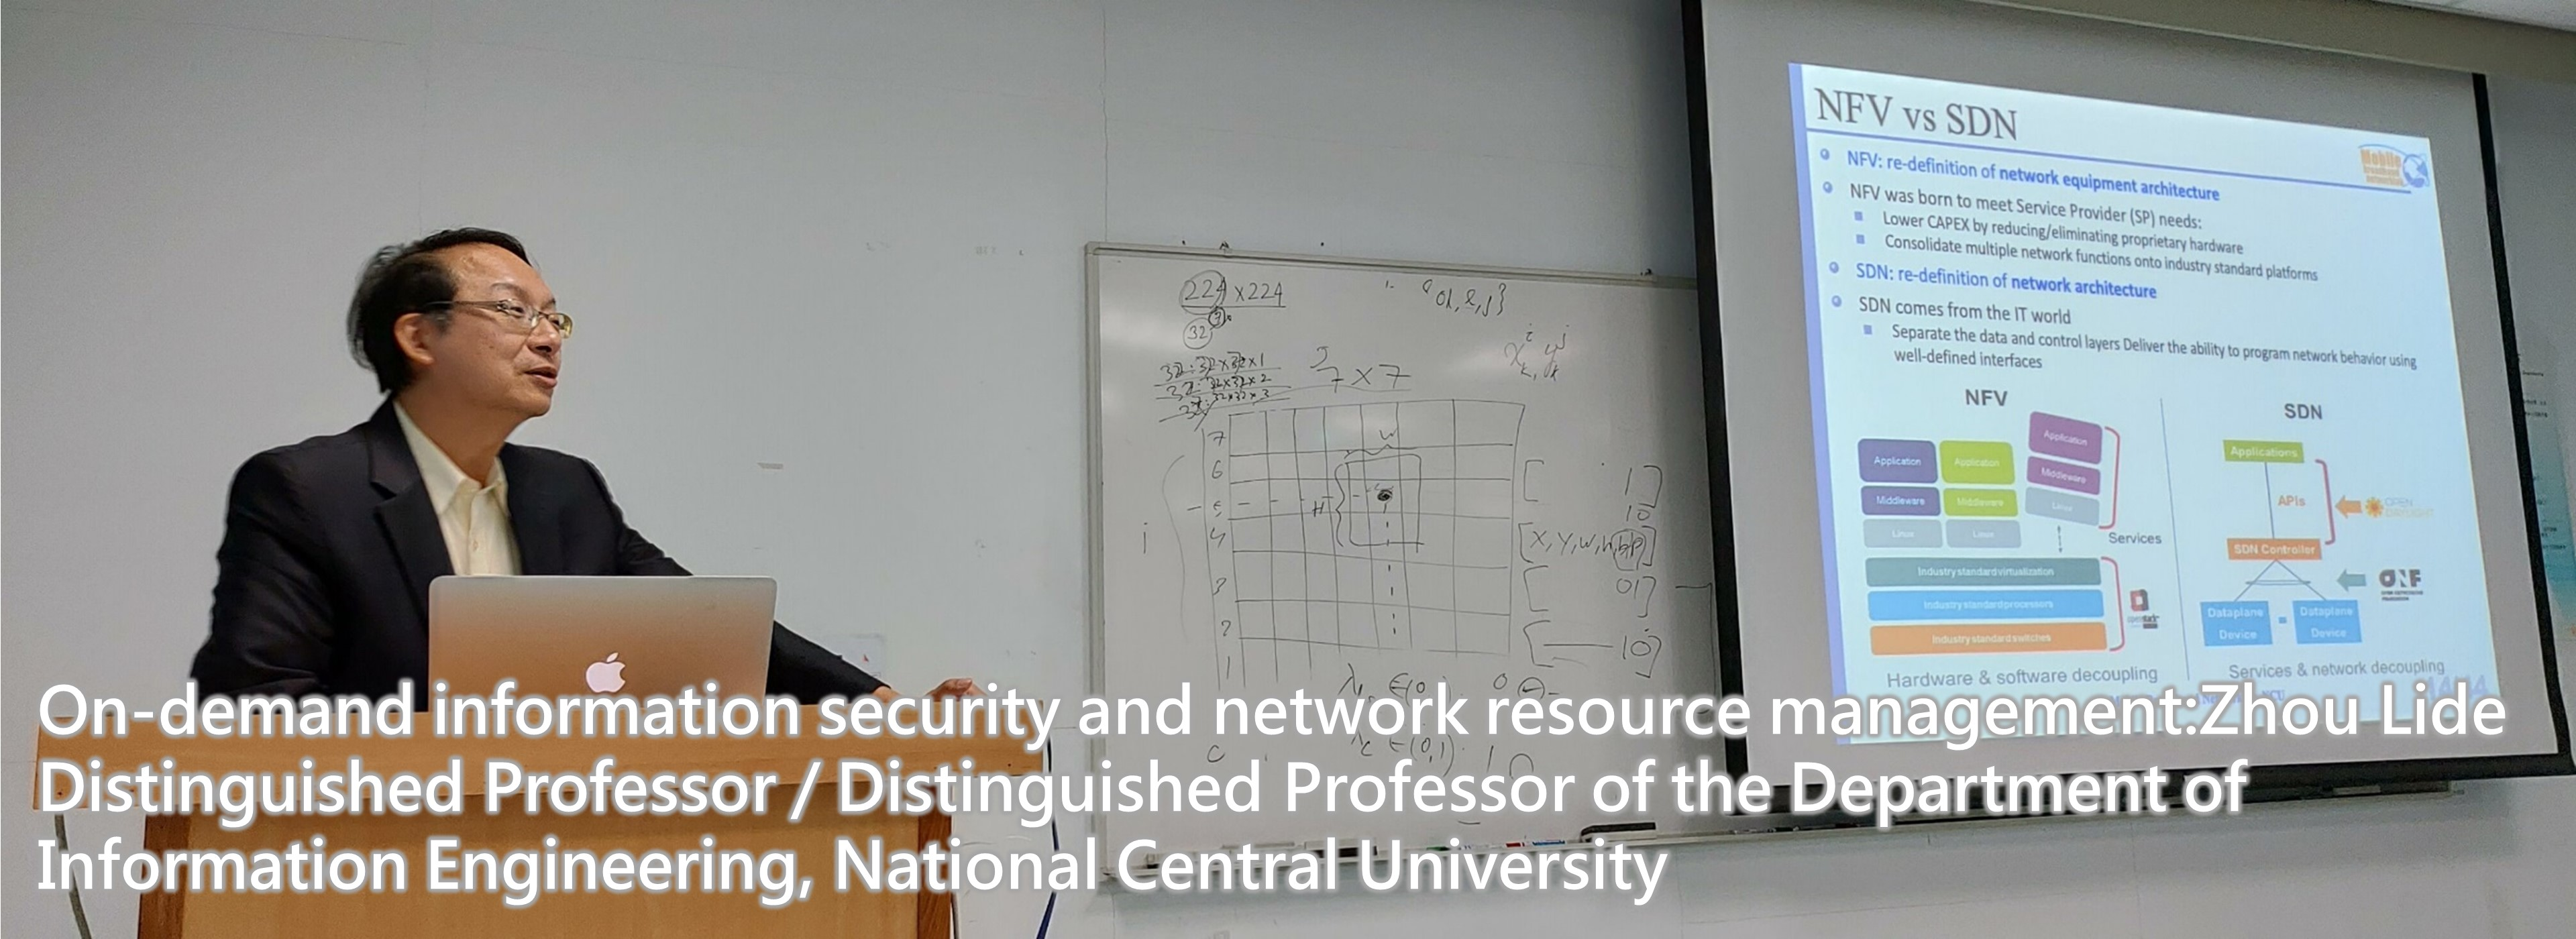 On-demand information security and network resource management:Zhou Lide Distinguished Professor / Distinguished Professor of the Department of Information Engineering, National Central University